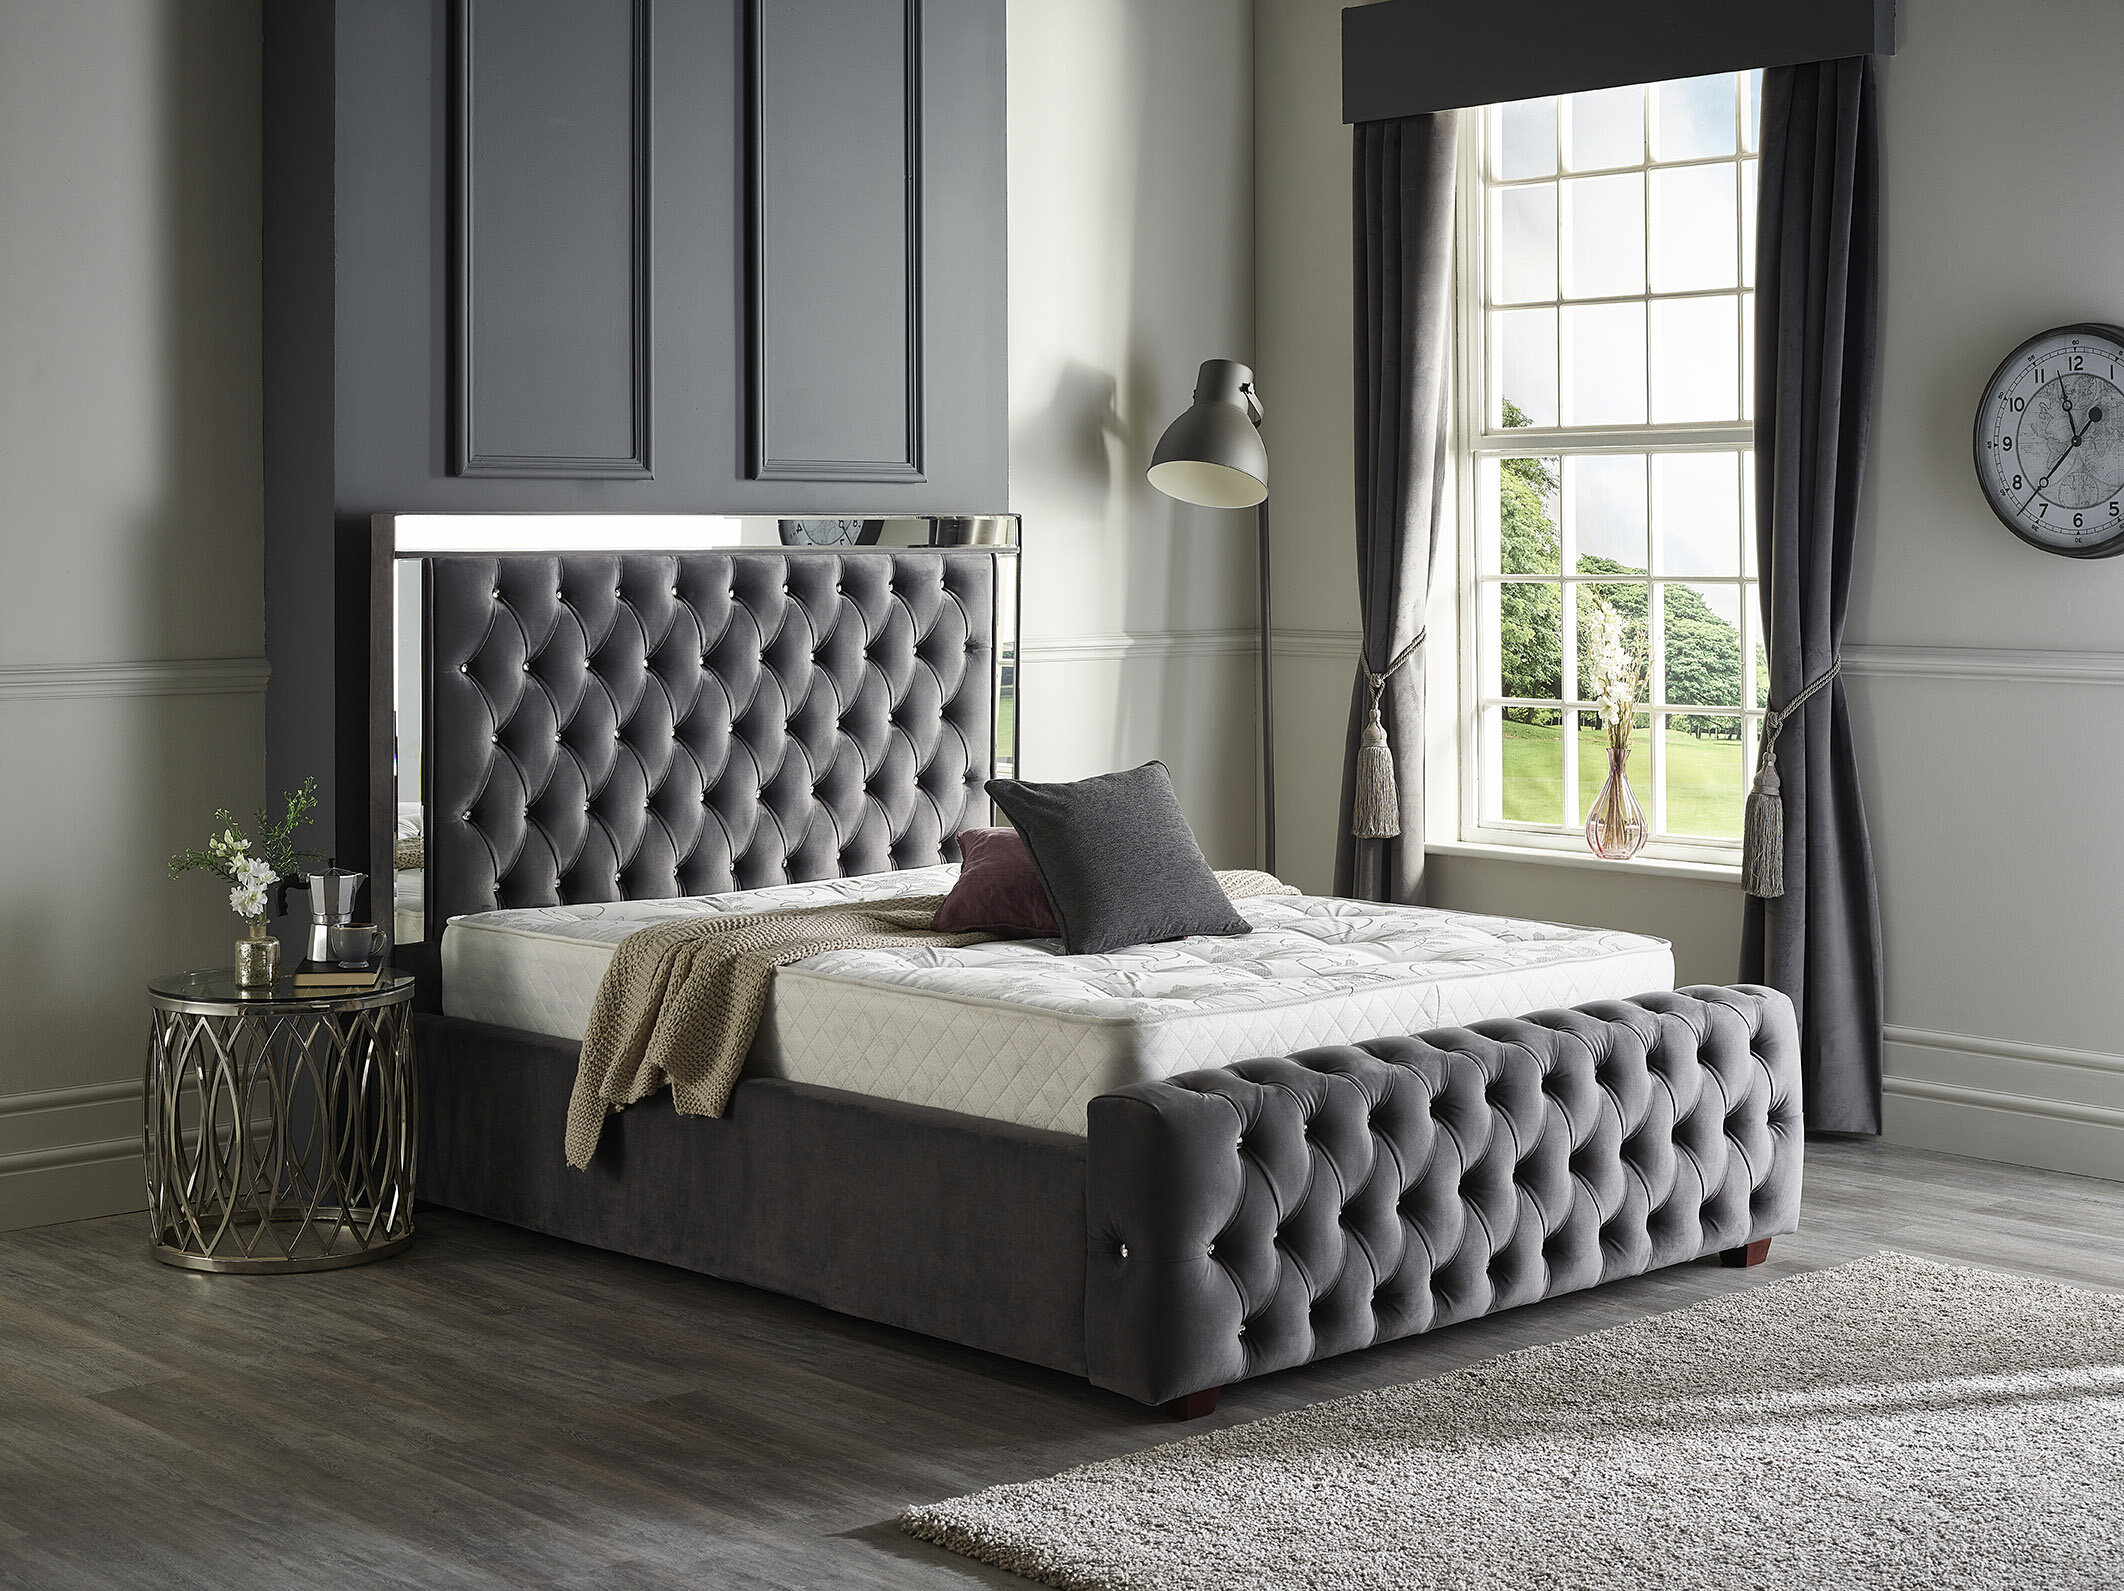 Canora Grey Kaleb Upholstered Bed Frame